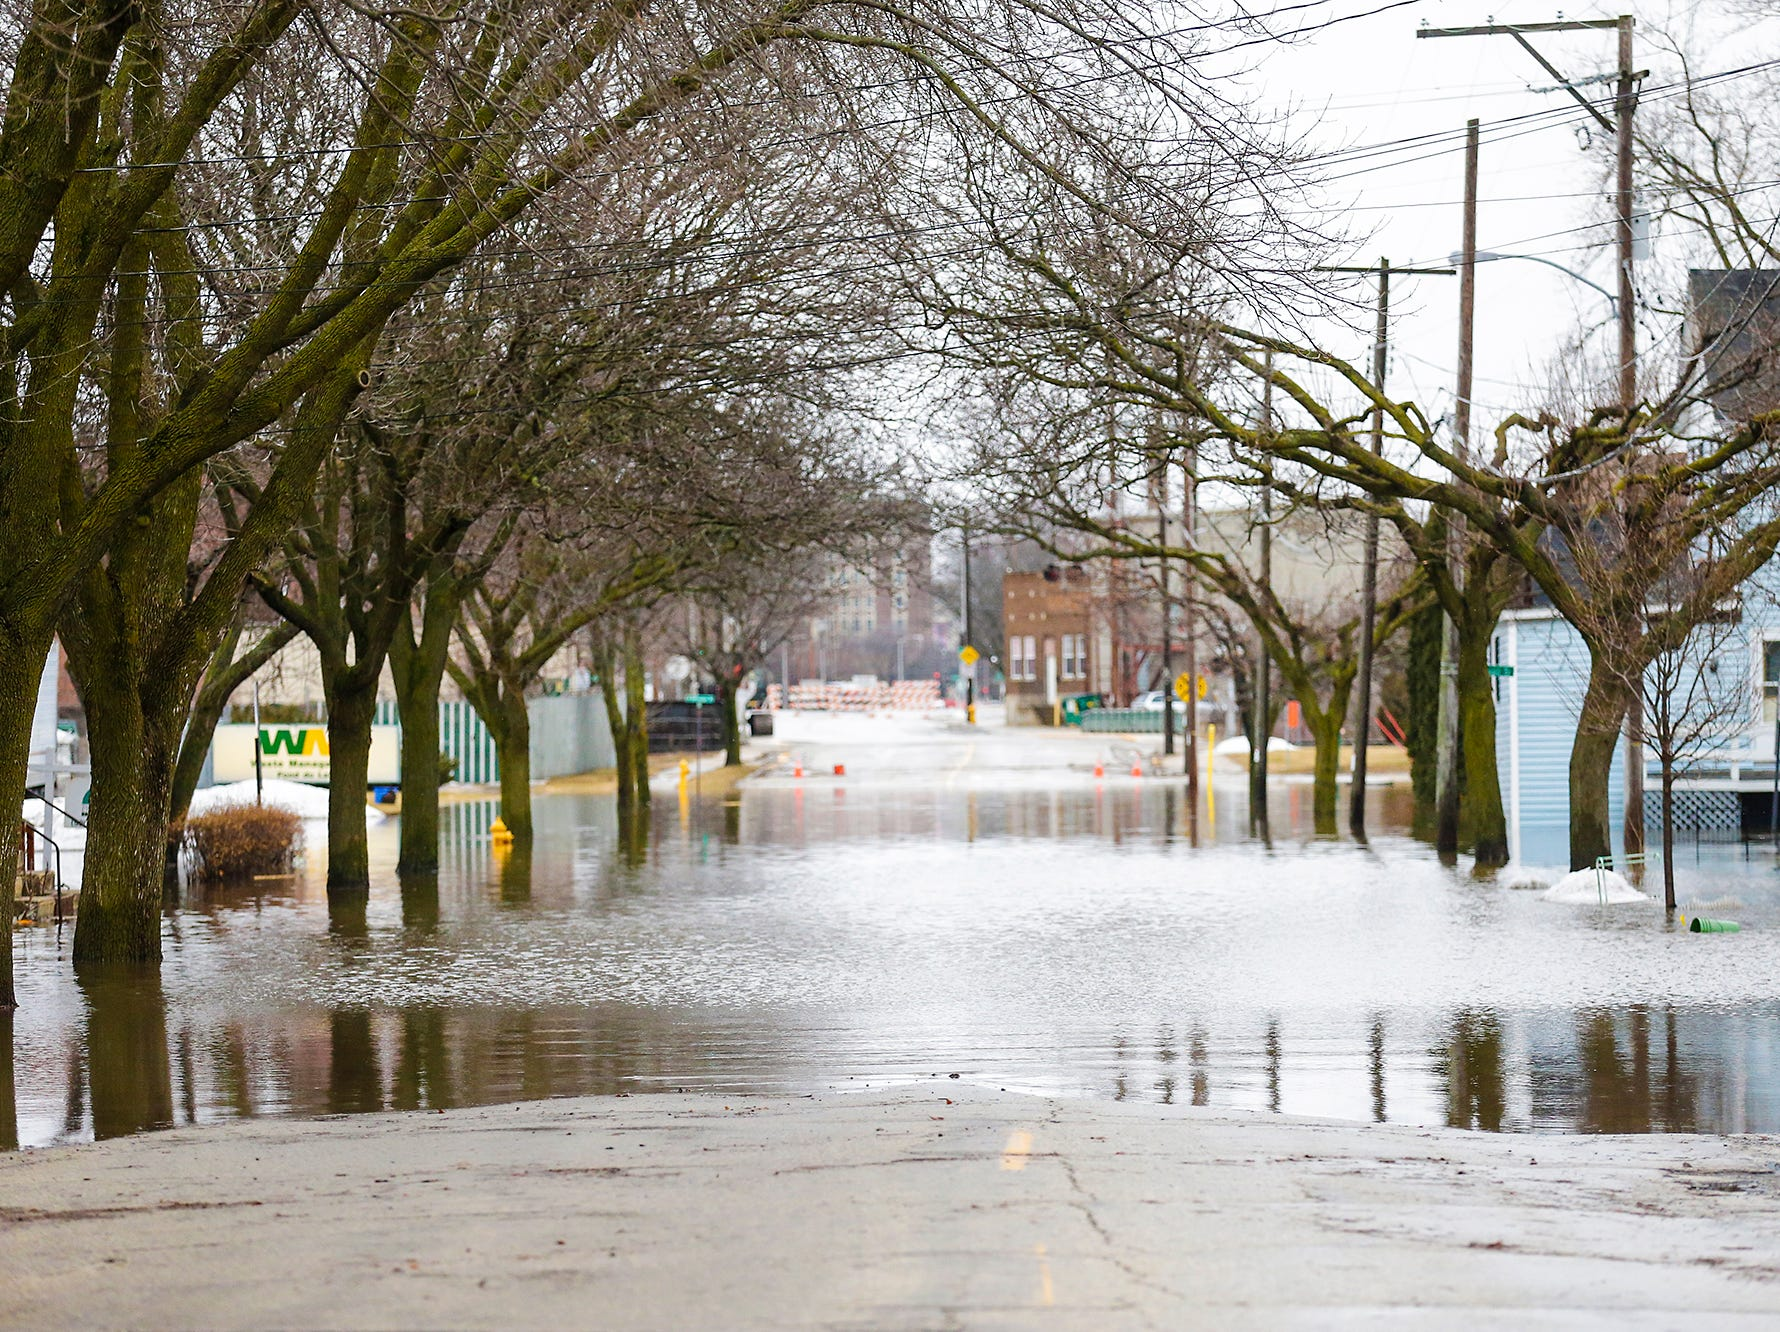 Parts of Division Street remain under water Friday, March 15, 2019. Ice jams on the east branch of the Fond du Lac River and heavy rain caused widespread flooding problems in the city on Thursday the 14th. Doug Raflik/USA TODAY NETWORK-Wisconsin